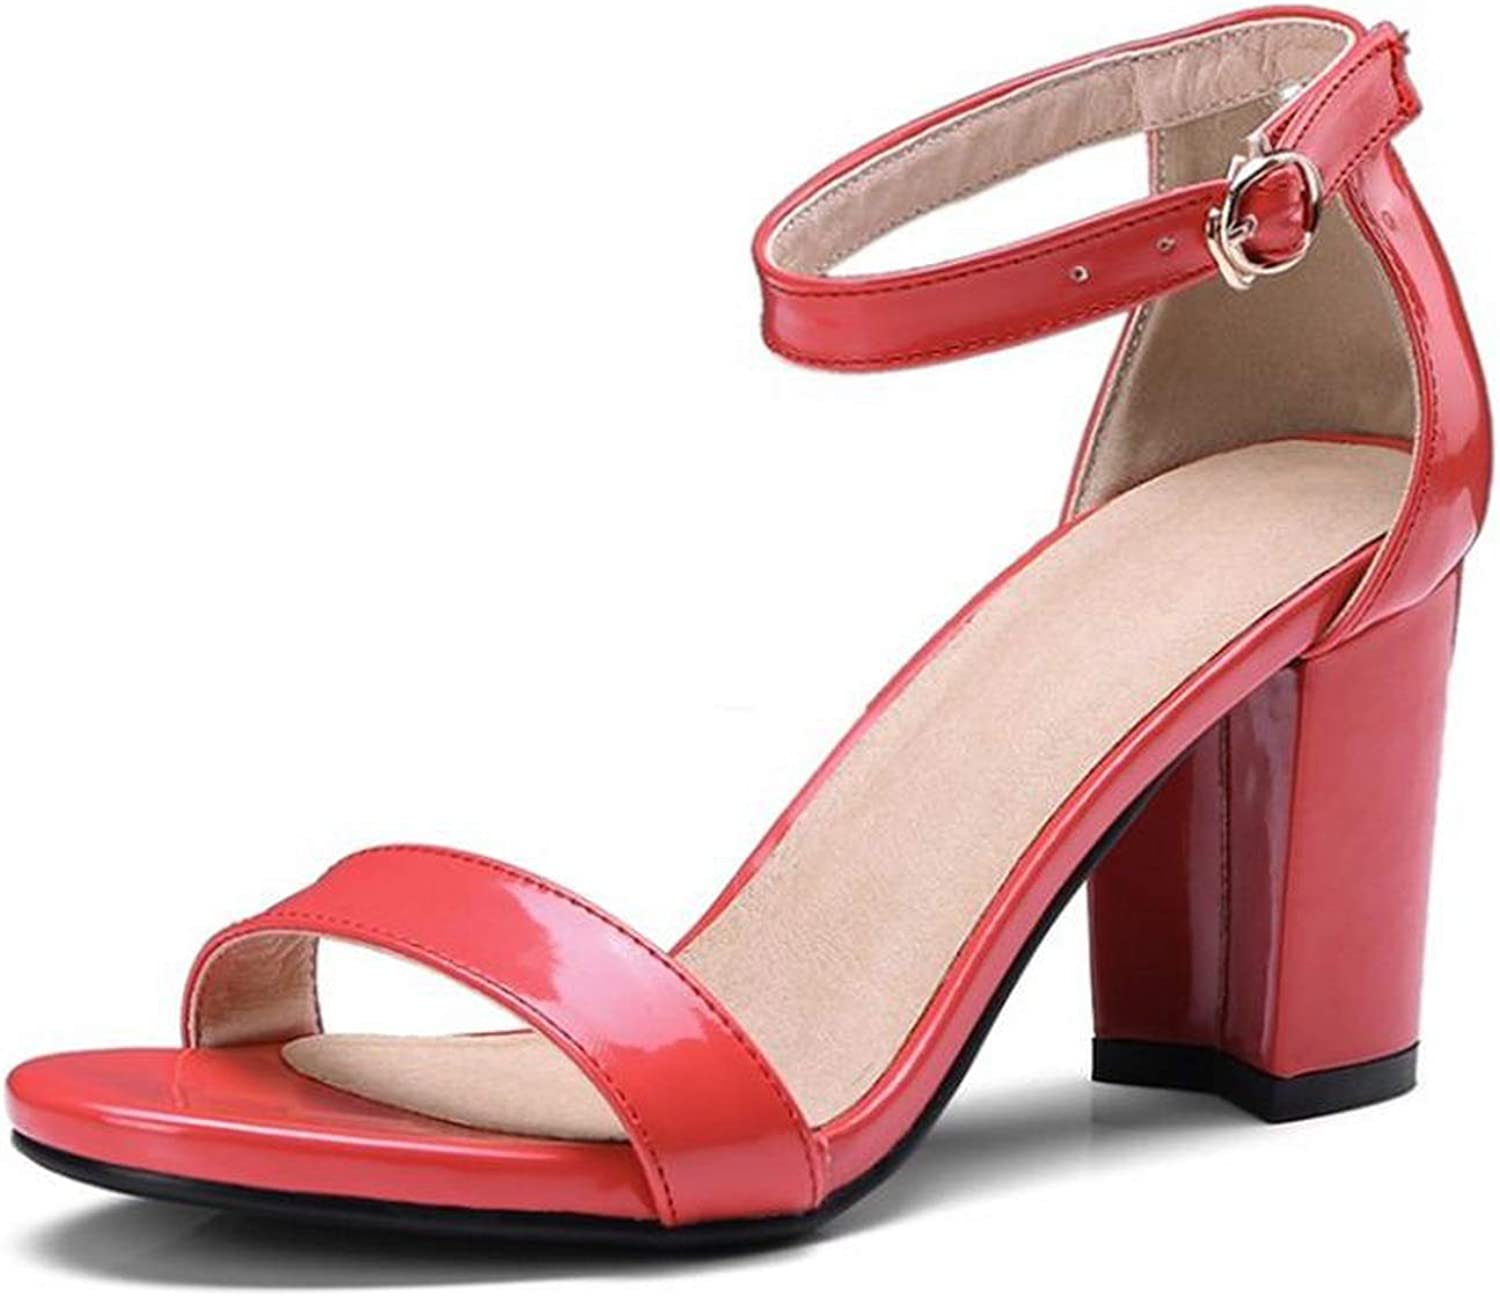 Fairly High Heel Ankle Strap Thick Heels Elegant Graceful shoes Dress Lady's shoes,Red,6